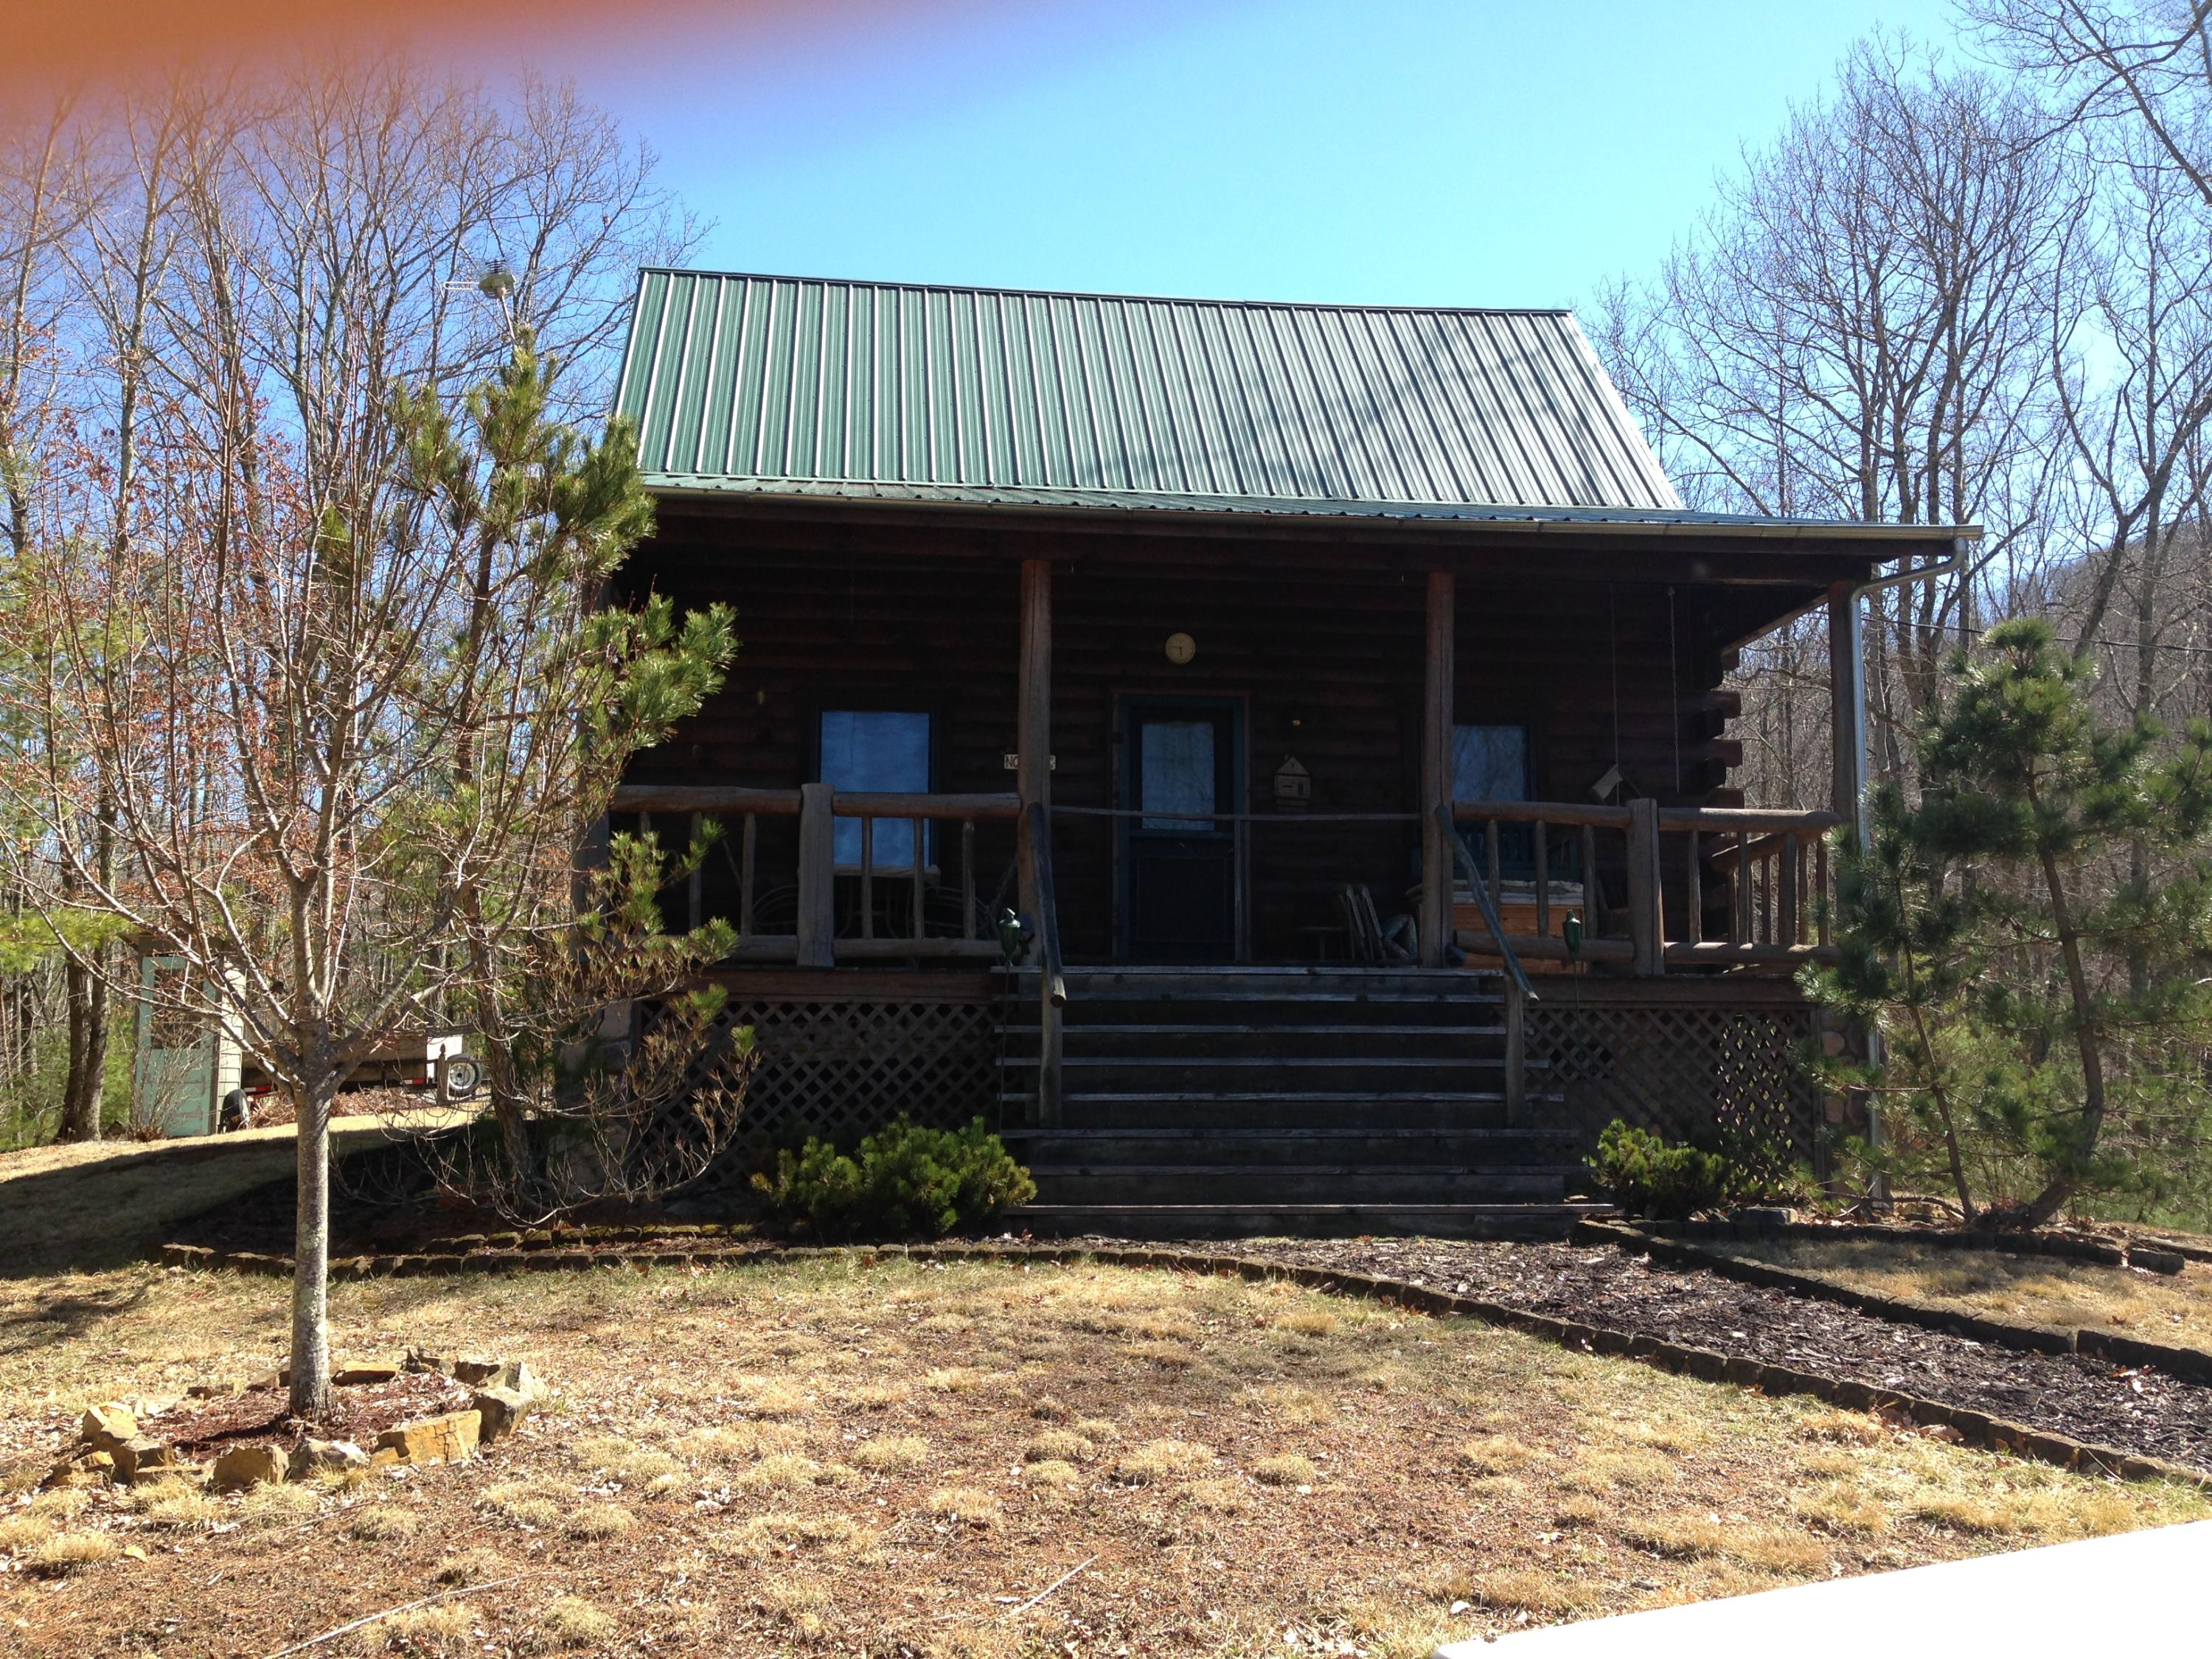 Log Cabins for Sale in Lewisburg WV and Surrounding Areas